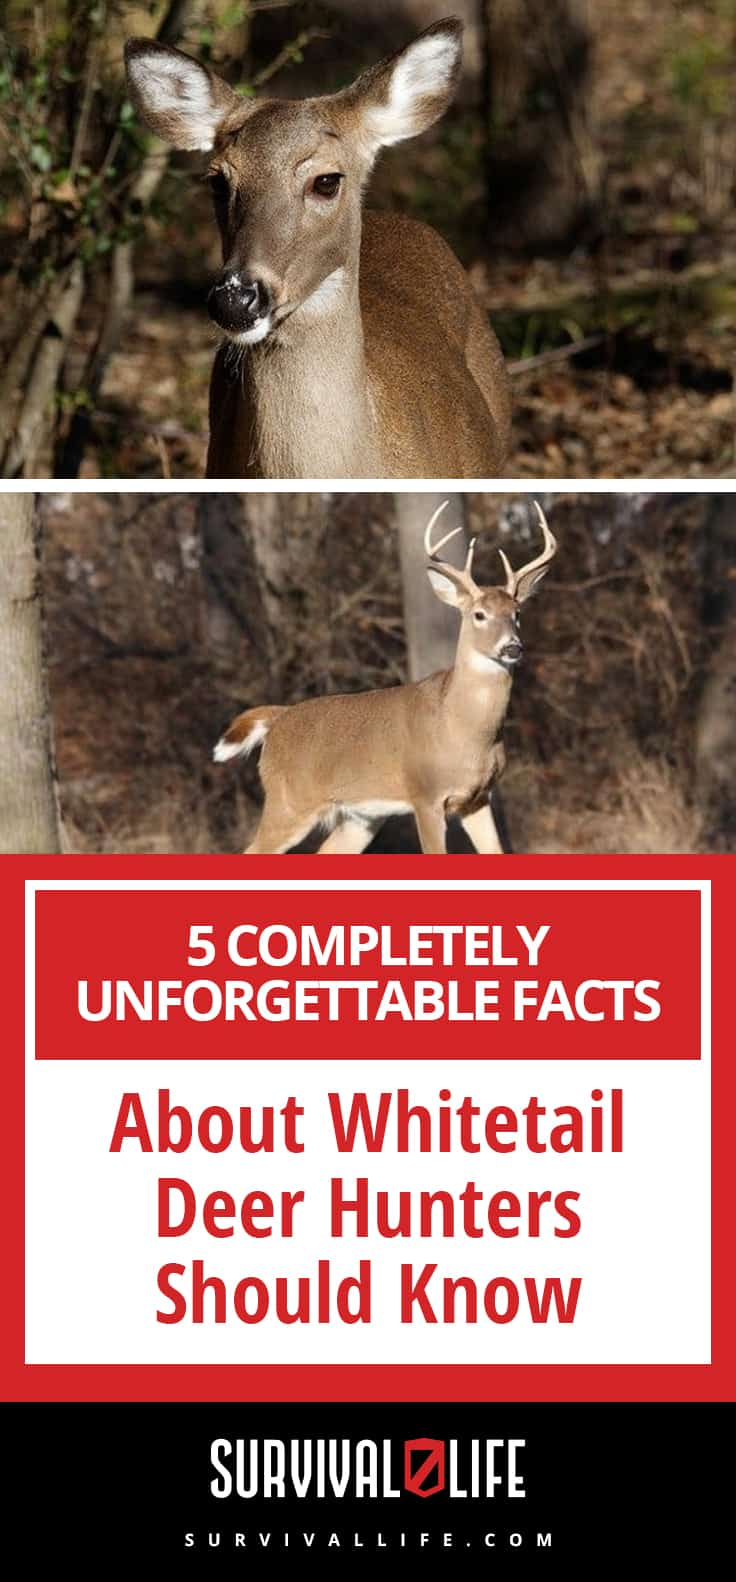 Completely Unforgettable Facts About Whitetail Deer Hunters Should Know | https://survivallife.com/facts-about-whitetail-deer/